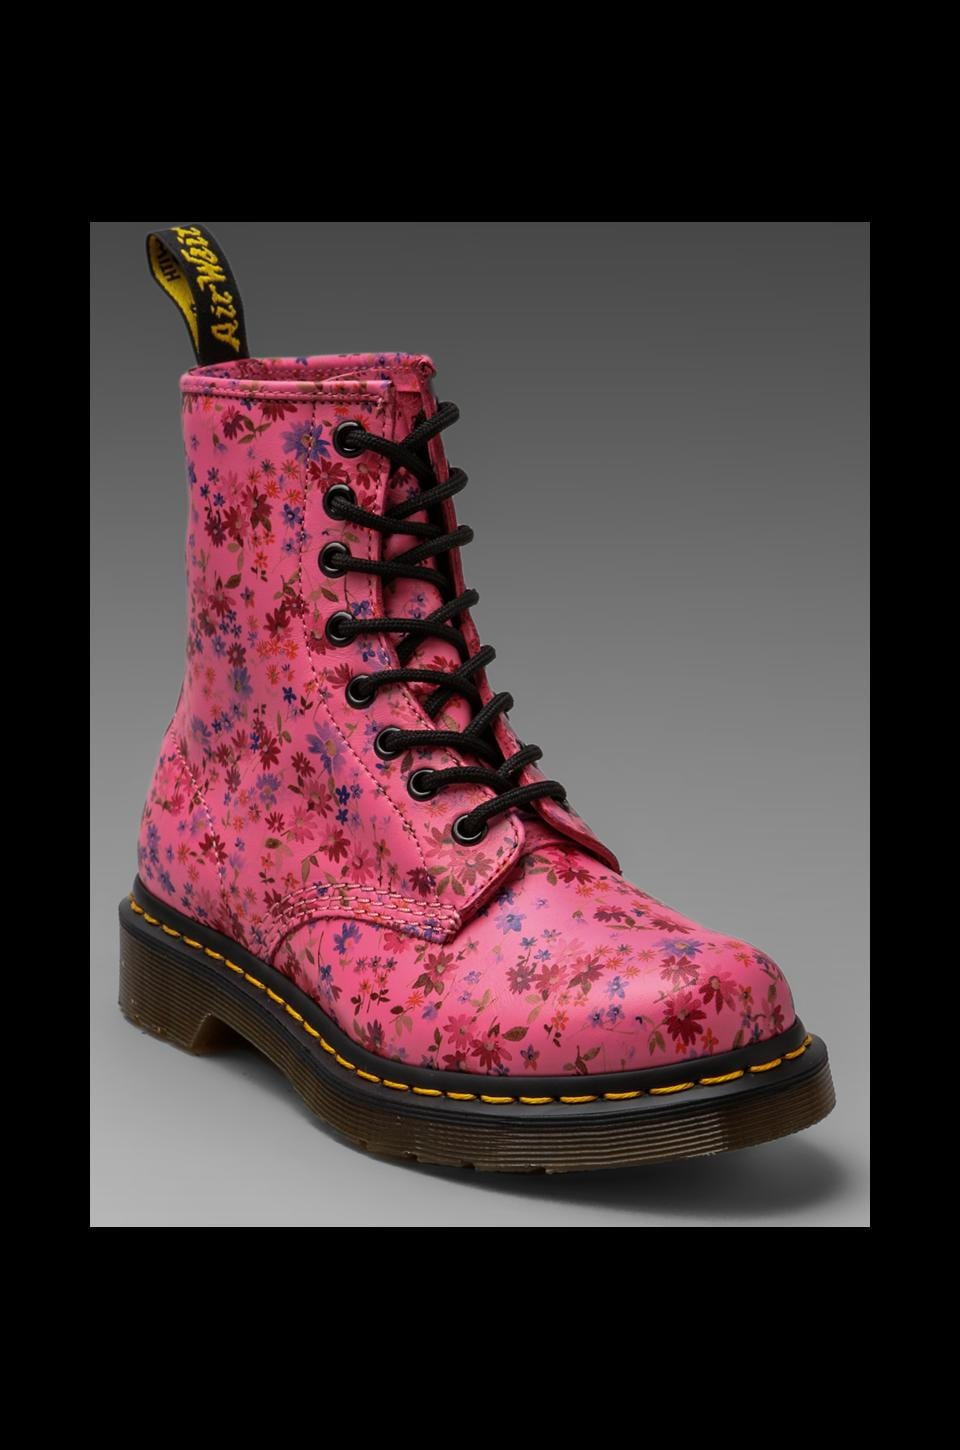 Dr. Martens 8-Eye Boot in Acid Pink